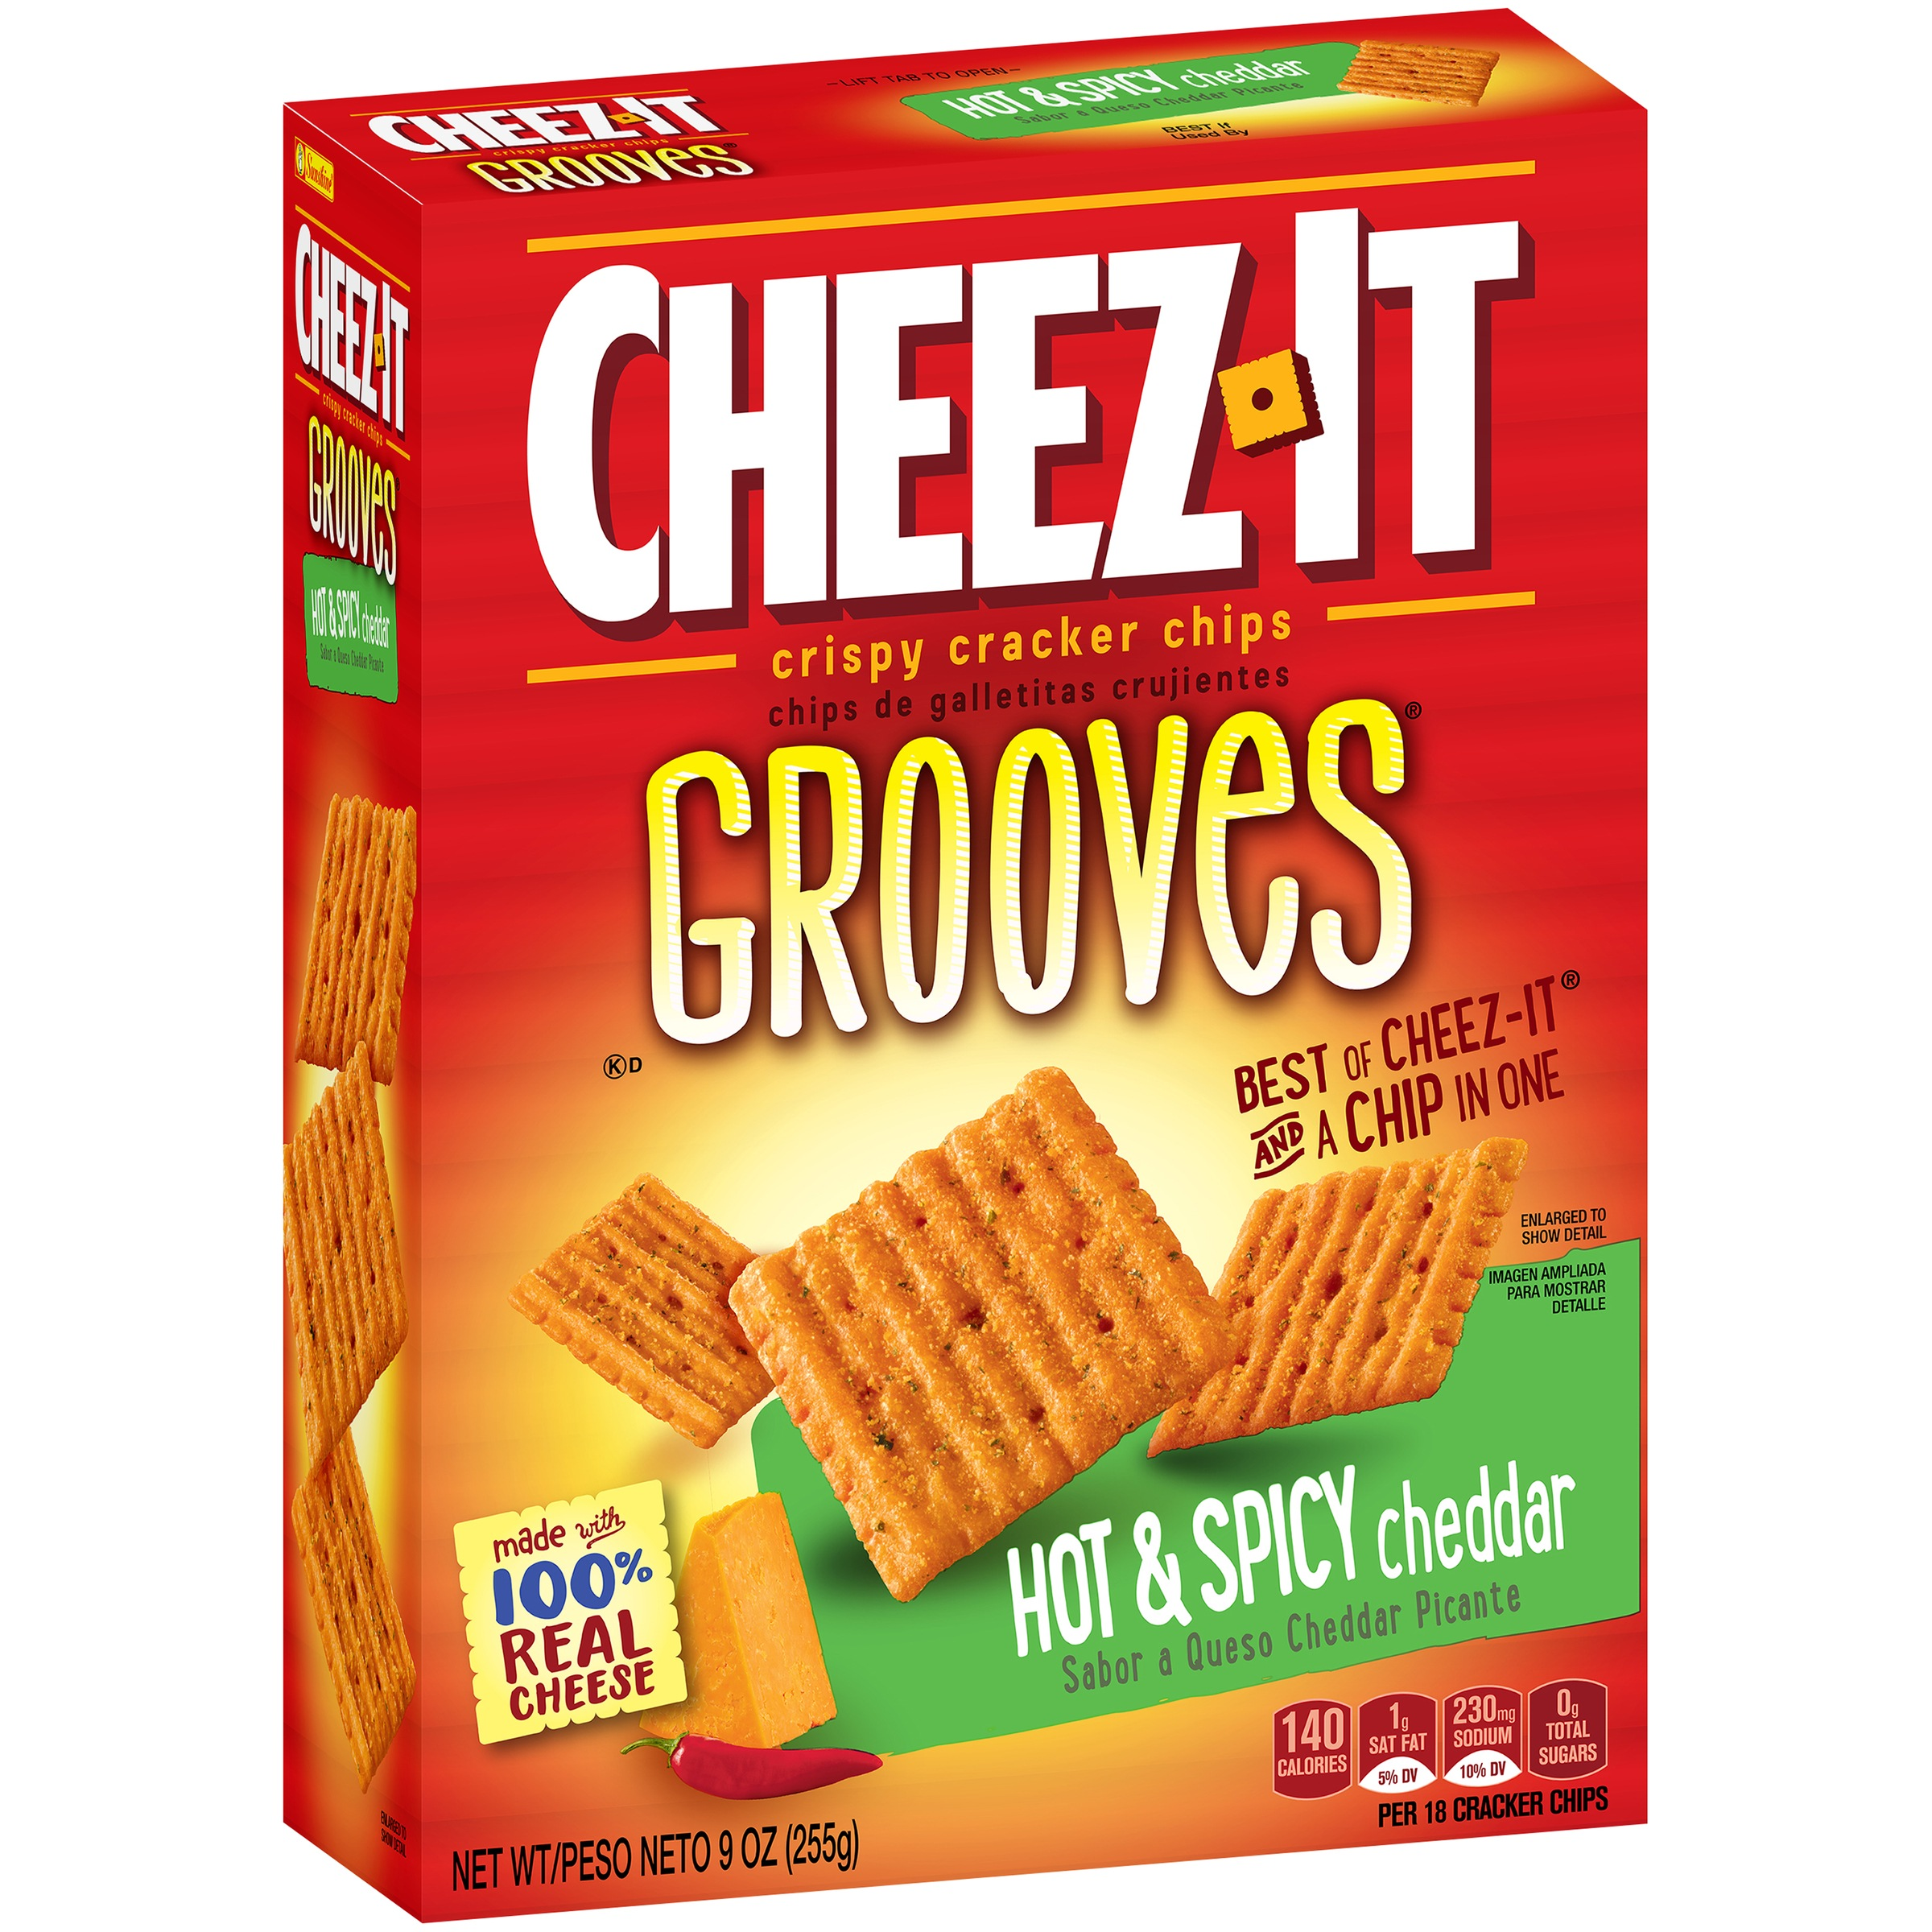 Cheez-It Grooves Hot & Spicy Cheddar Crispy Cracker Chips 9 oz. Box